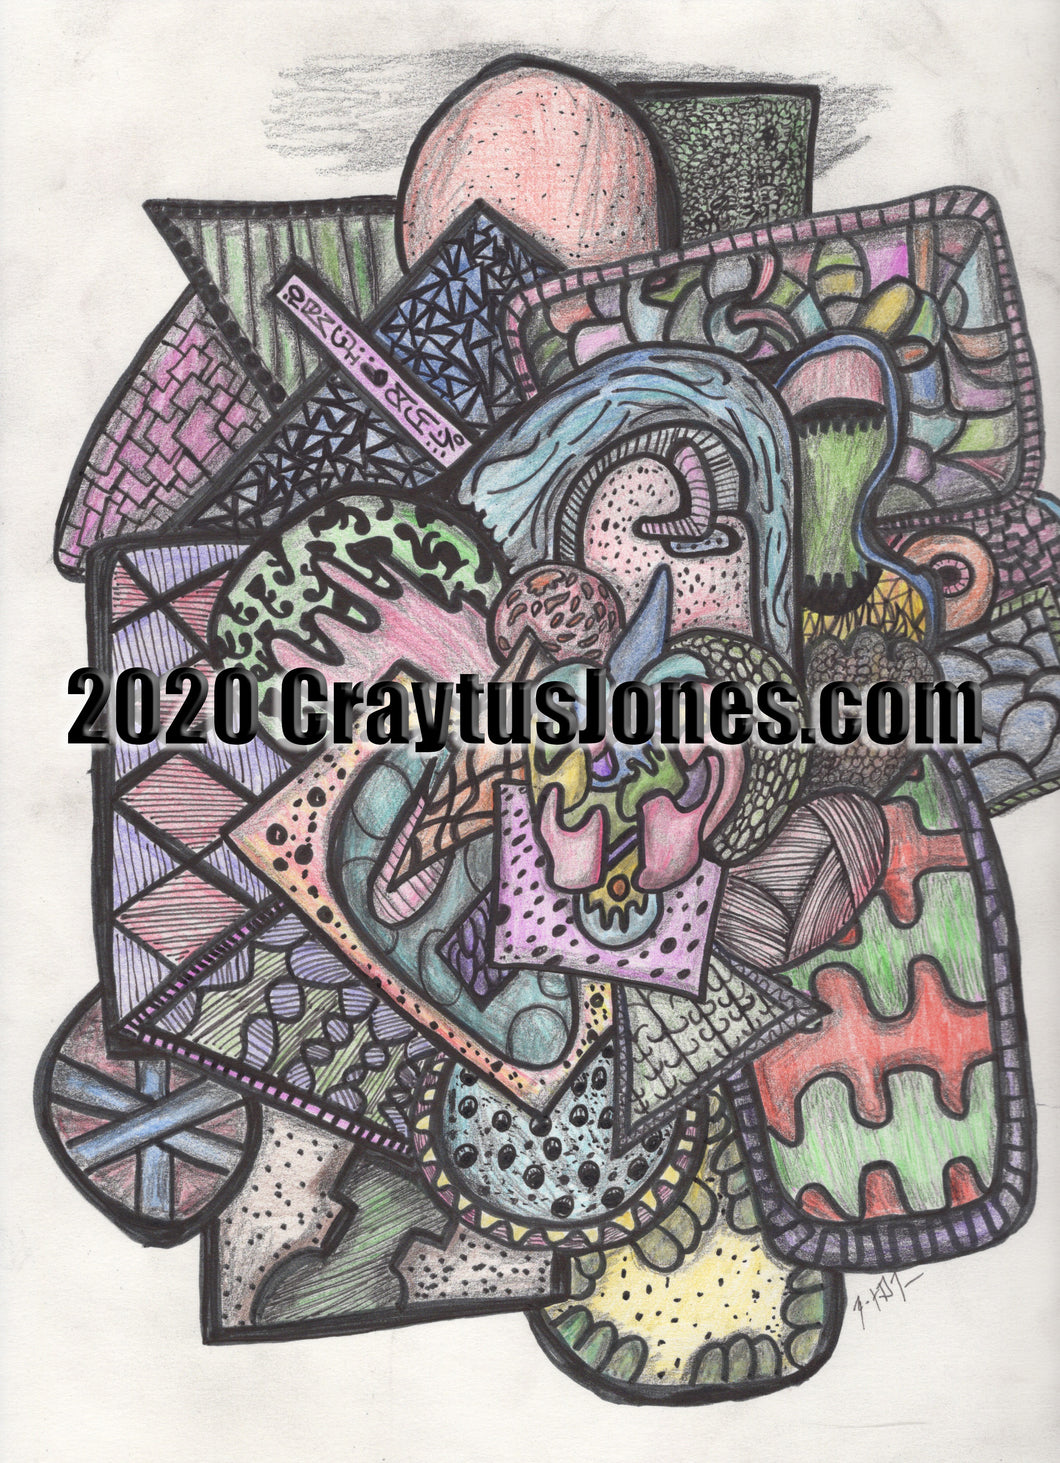 Pen and Pencil Drawing Folk Art Doodle Abstract by Craytus Jones wall decor graphic quarantine art